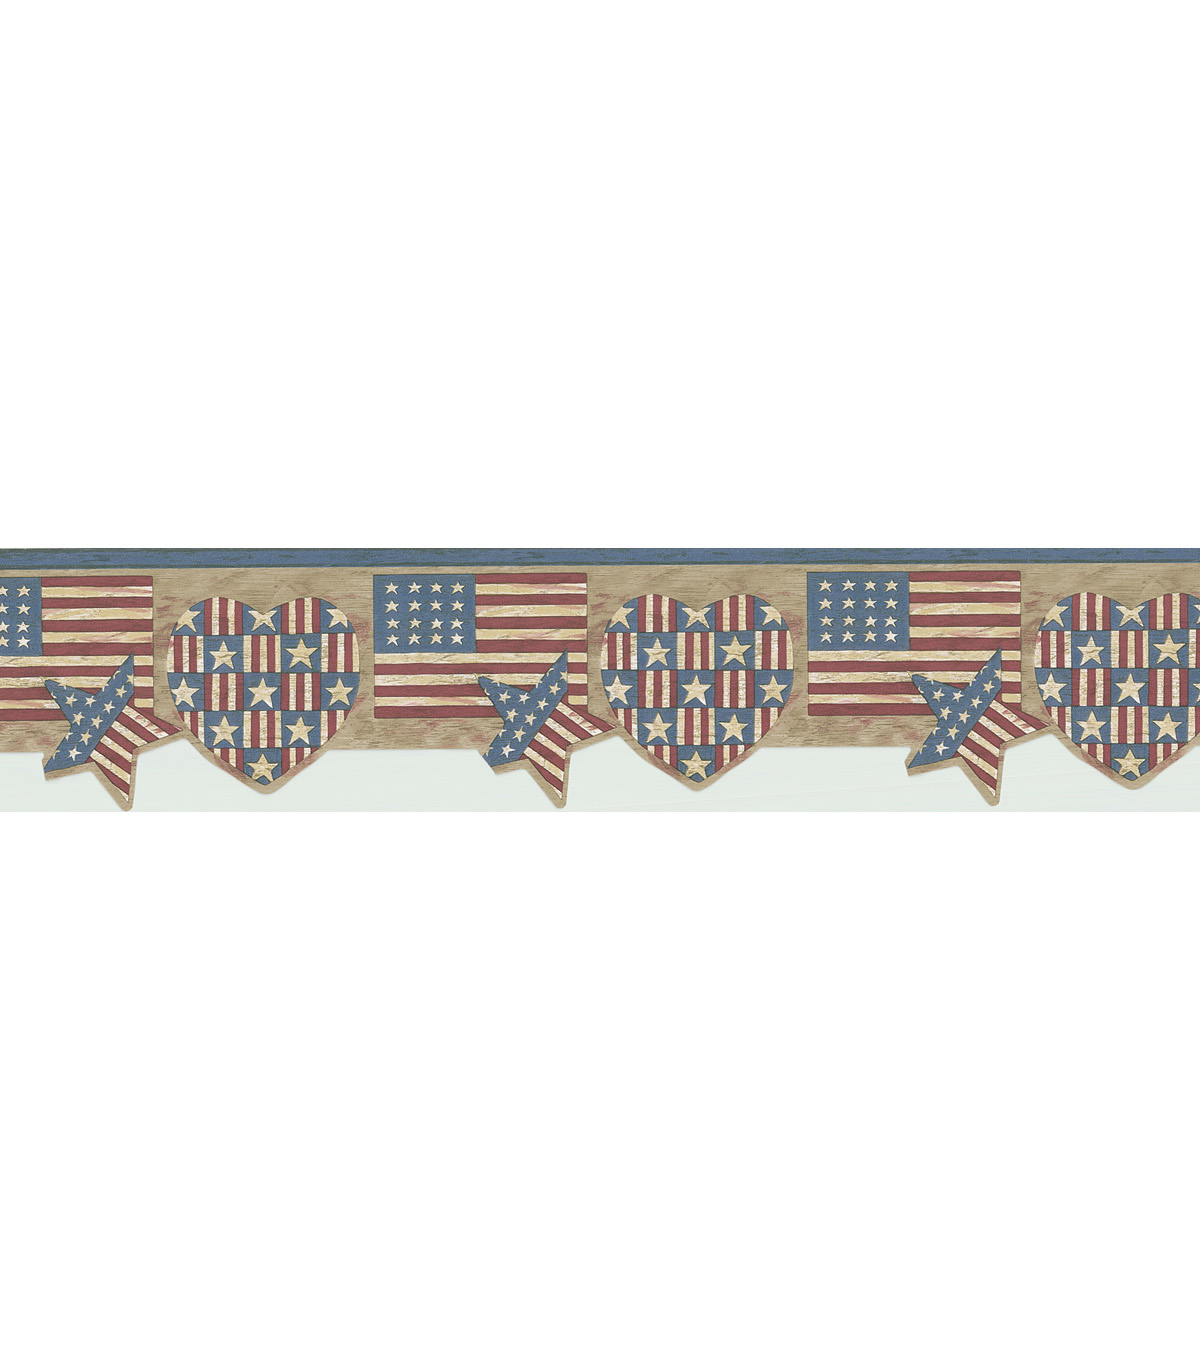 American Flag Shapes Wallpaper Border, Multicolor